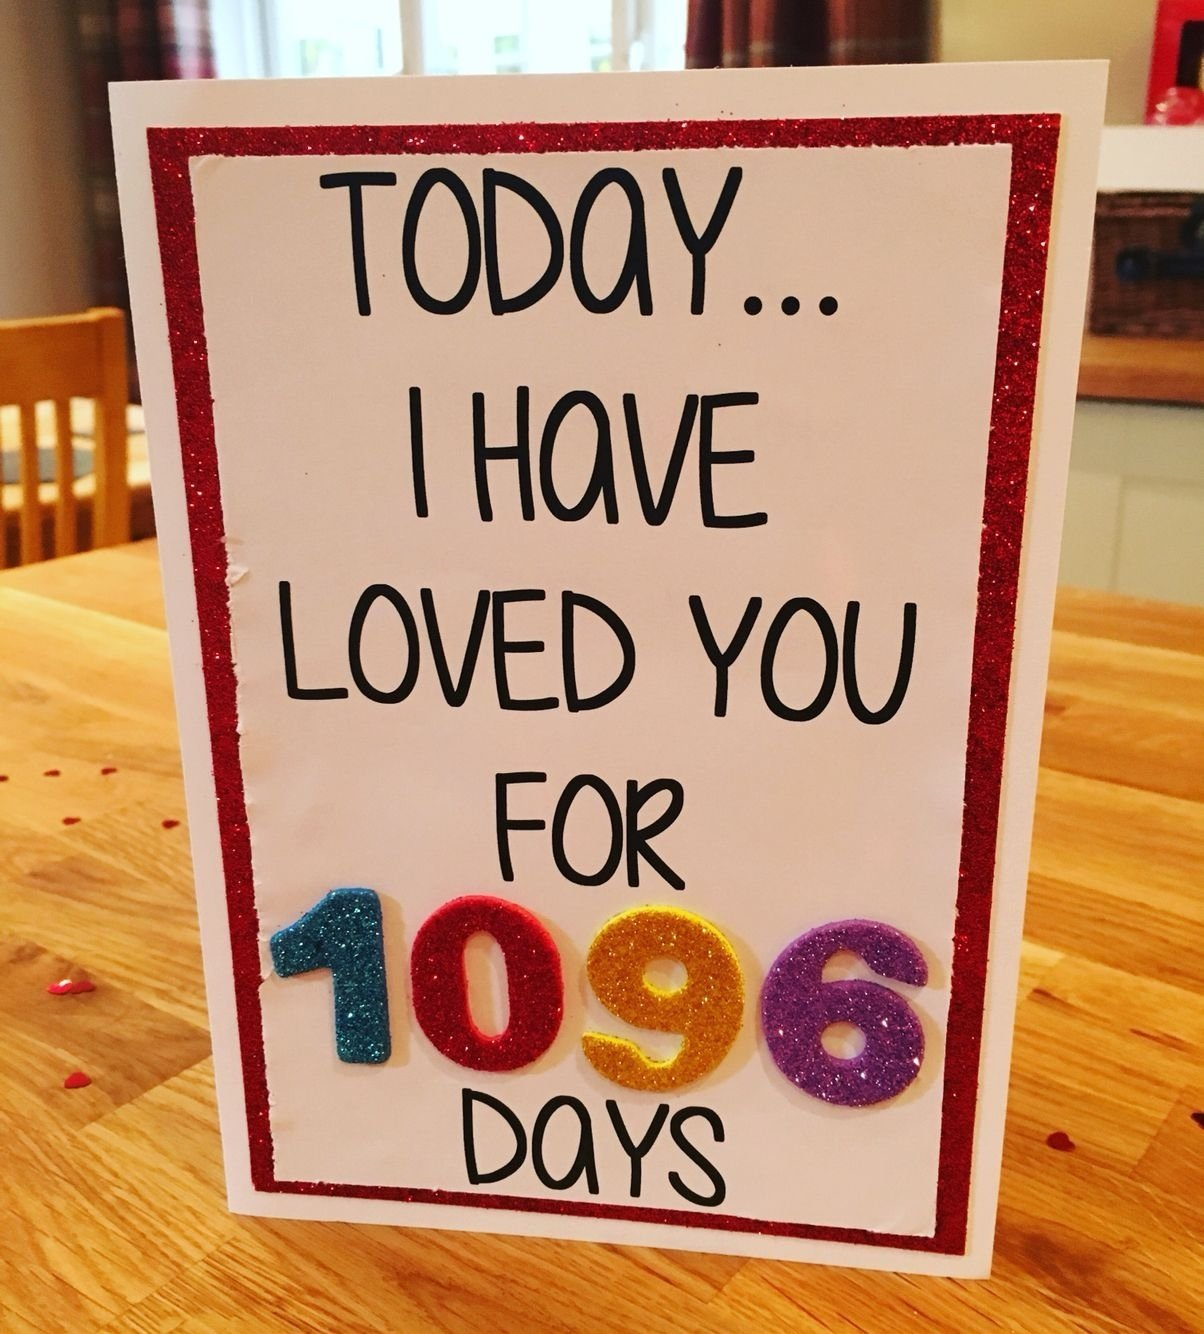 10 Great 3Rd Year Anniversary Gift Ideas 3 year anniversary card today i have loved you for 1096 days x 7 2020